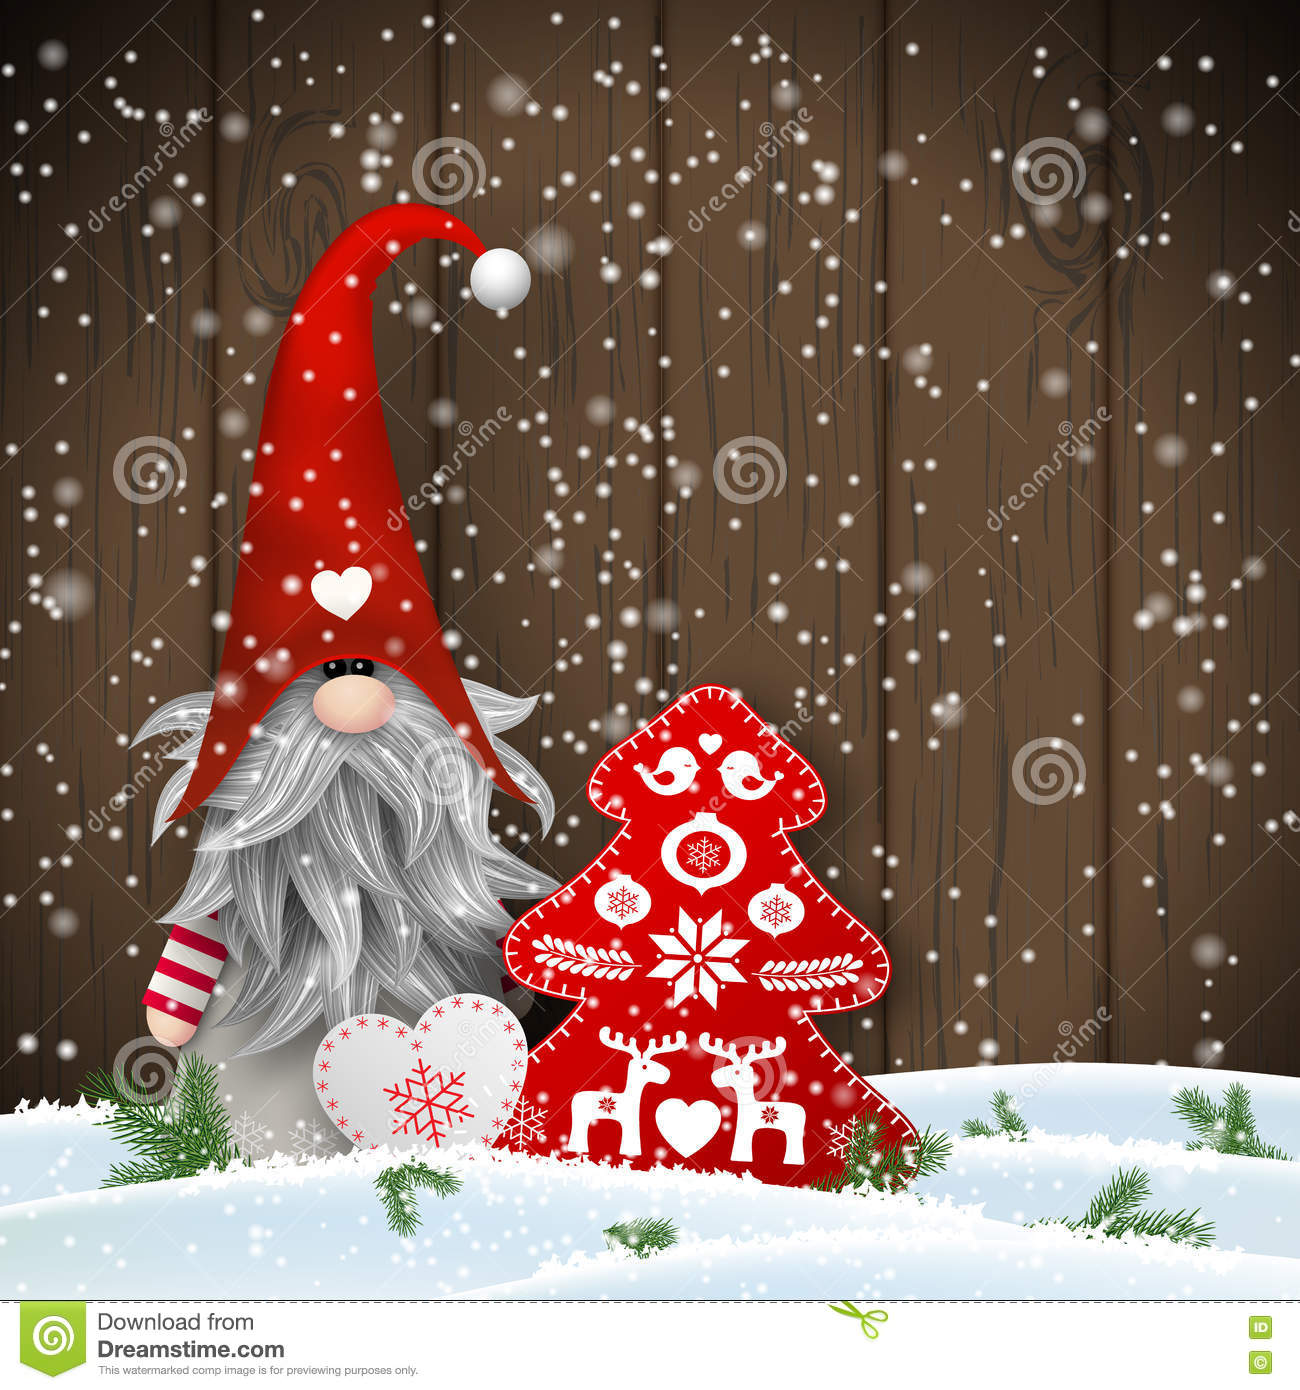 download scandinavian christmas traditional gnome tomte with other seasonal decorations illustration stock vector - Gnome Christmas Decorations